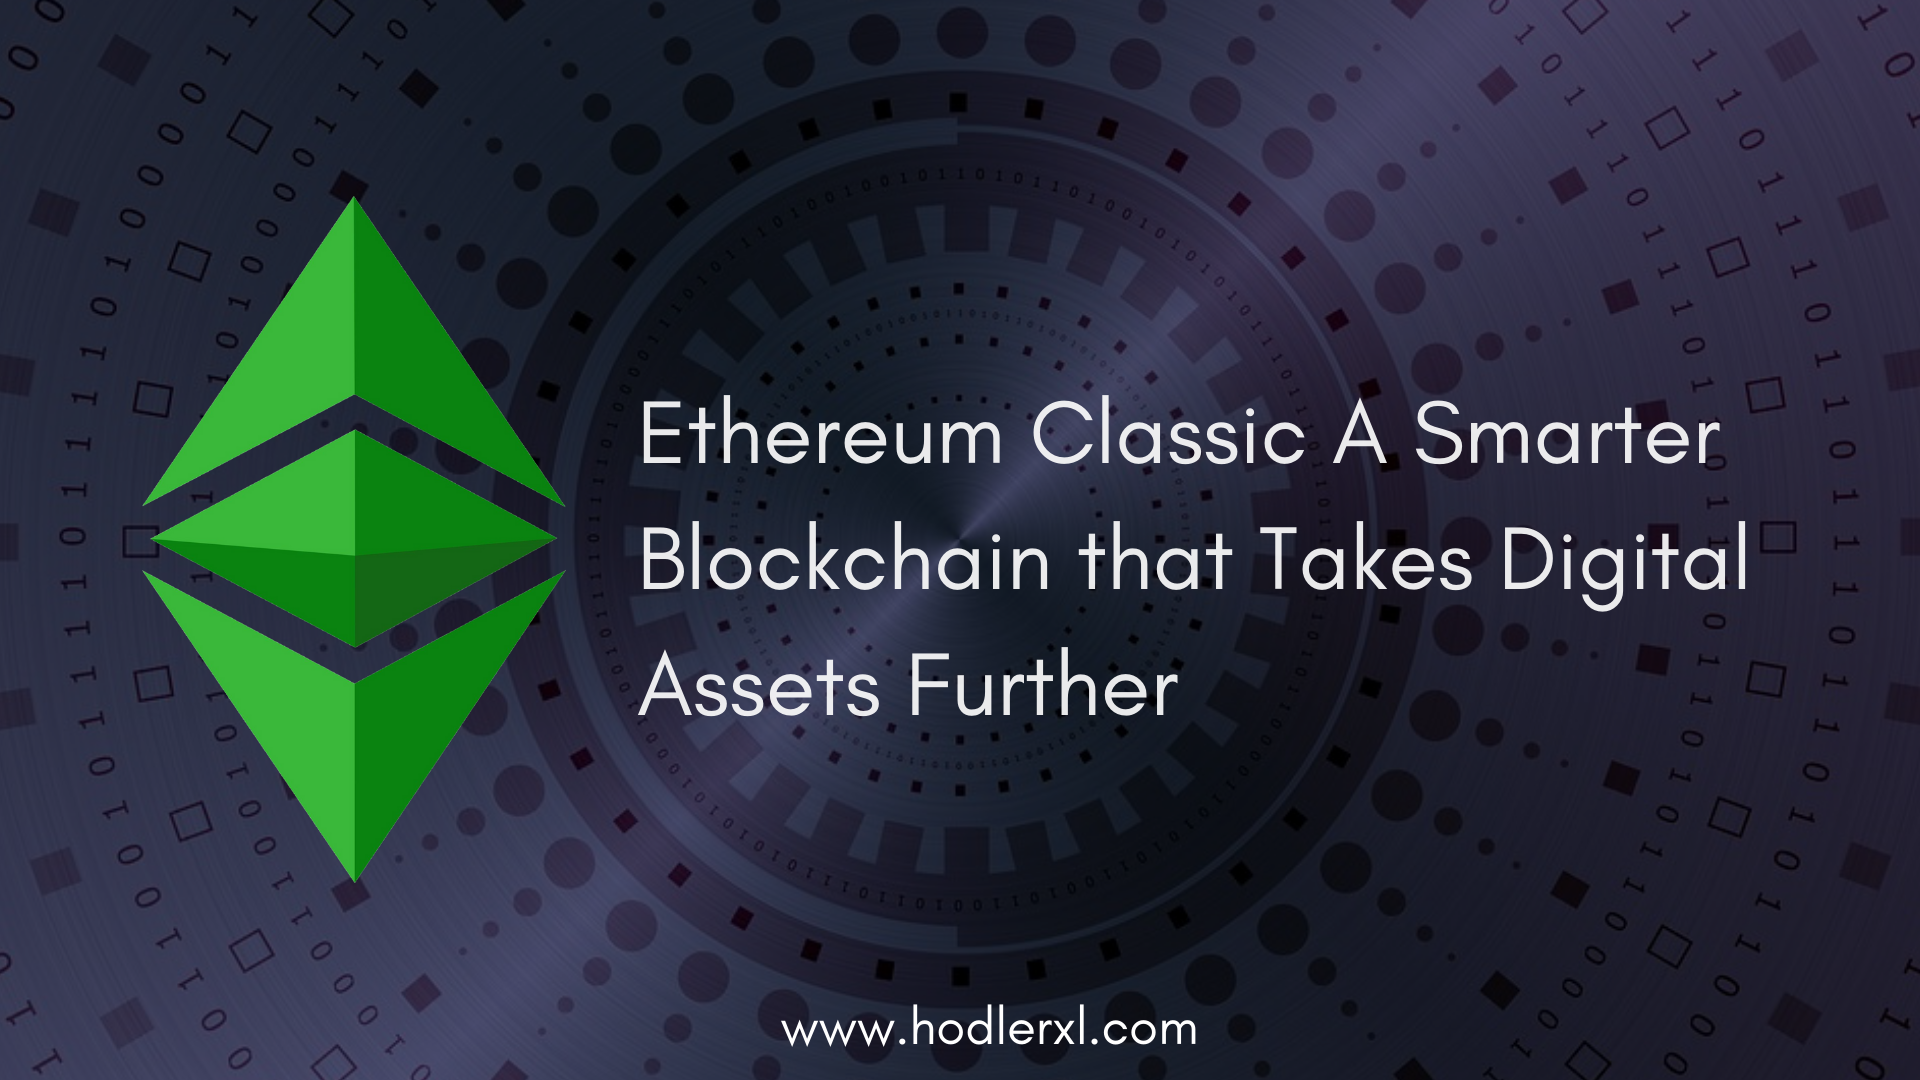 Ethereum Classic A Smarter Blockchain that Takes Digital Assets Further